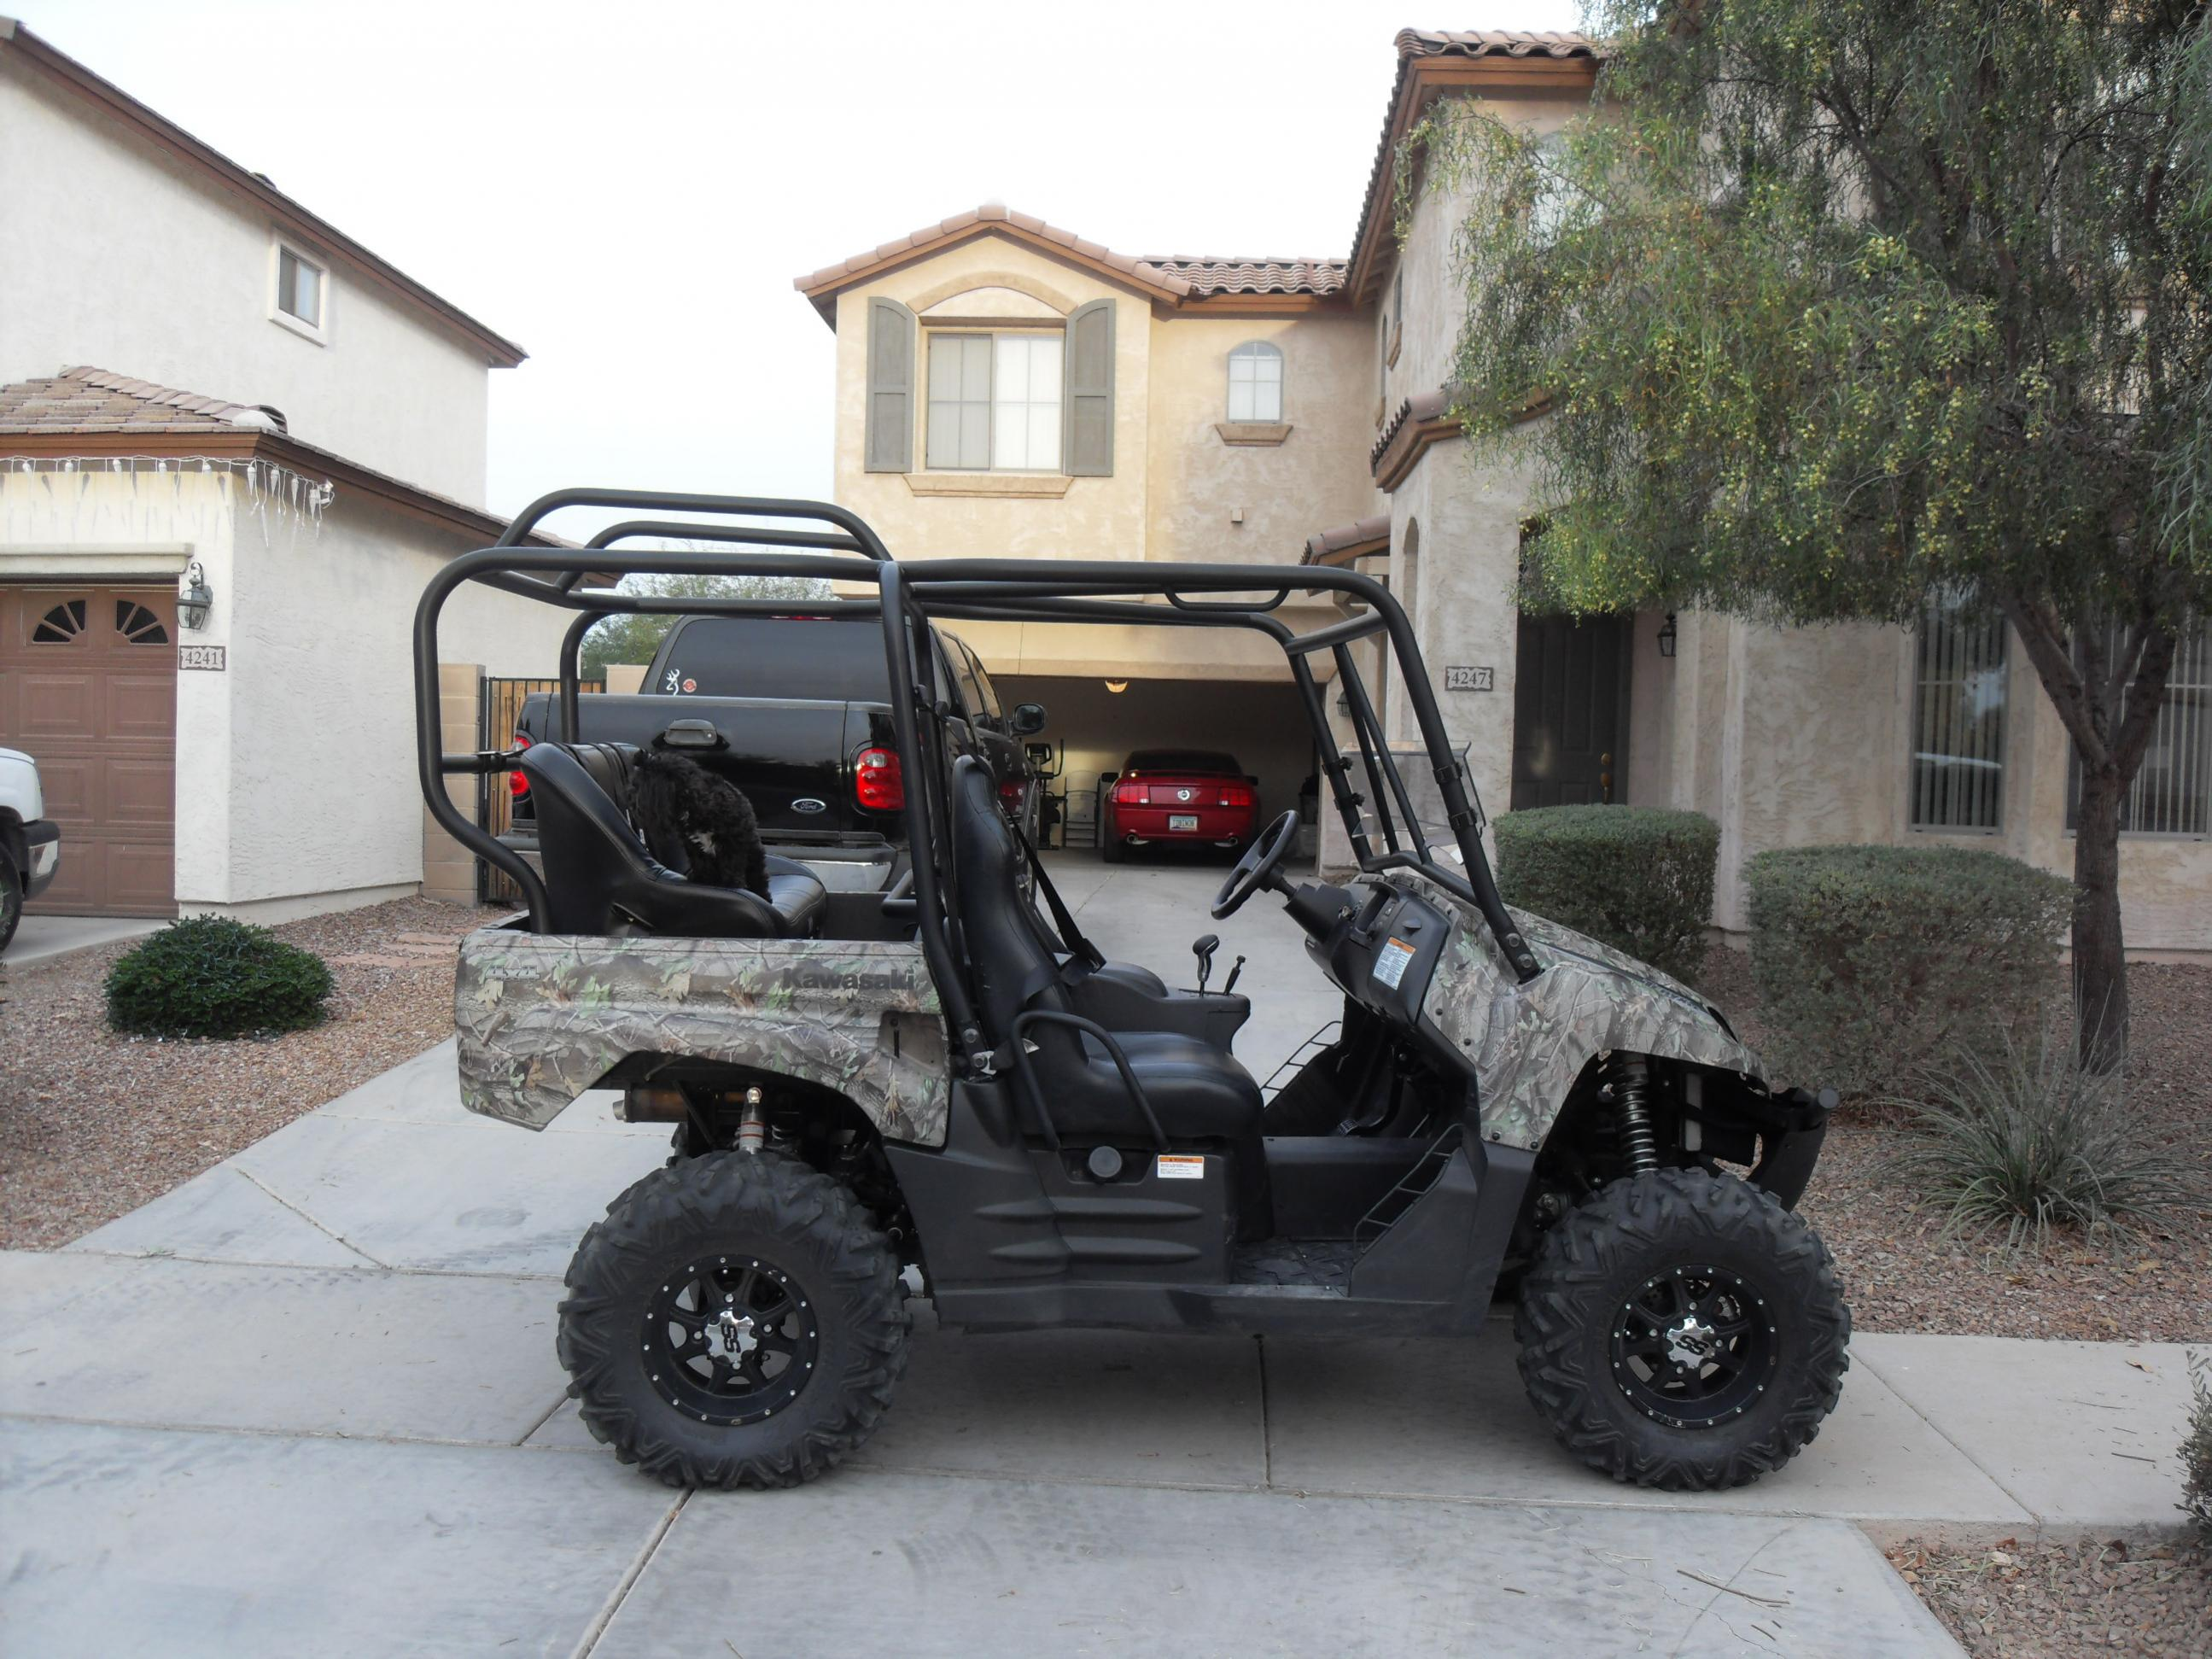 Kawasaki Teryx For Sale In Arizona